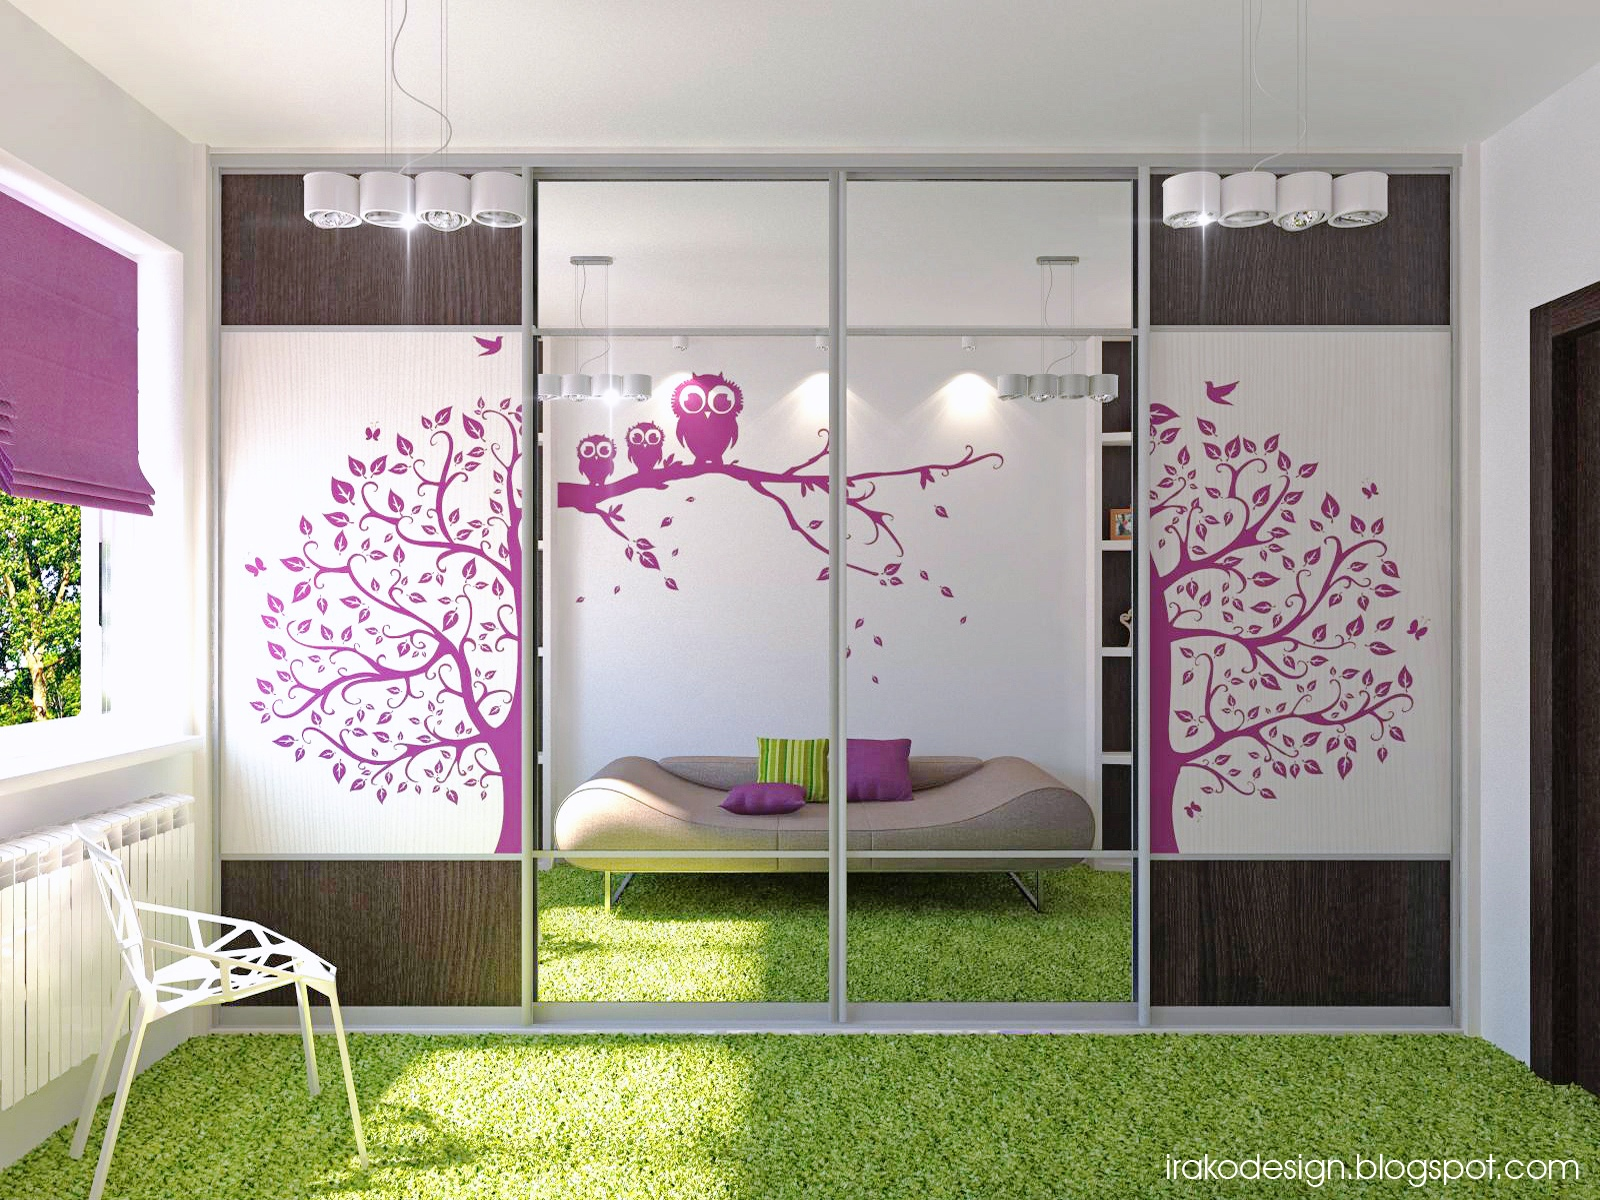 Bedroom Design For Girls. Bedroom Design For Girls R